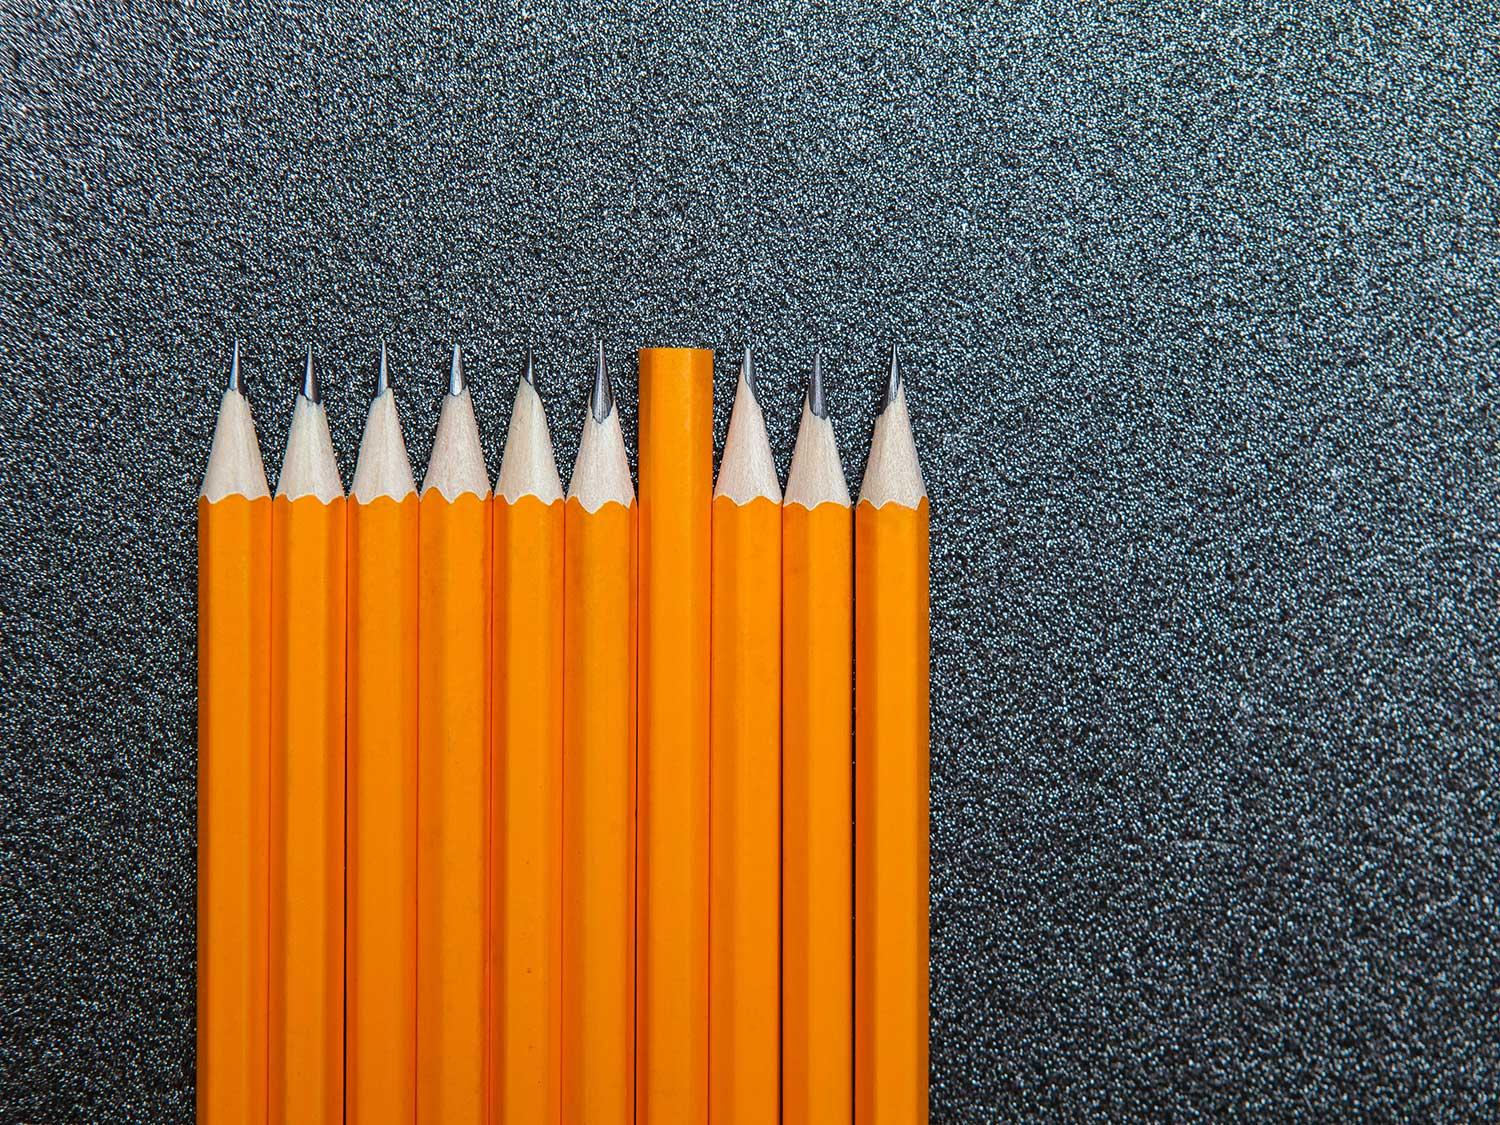 Sharpened pencils on carpet.